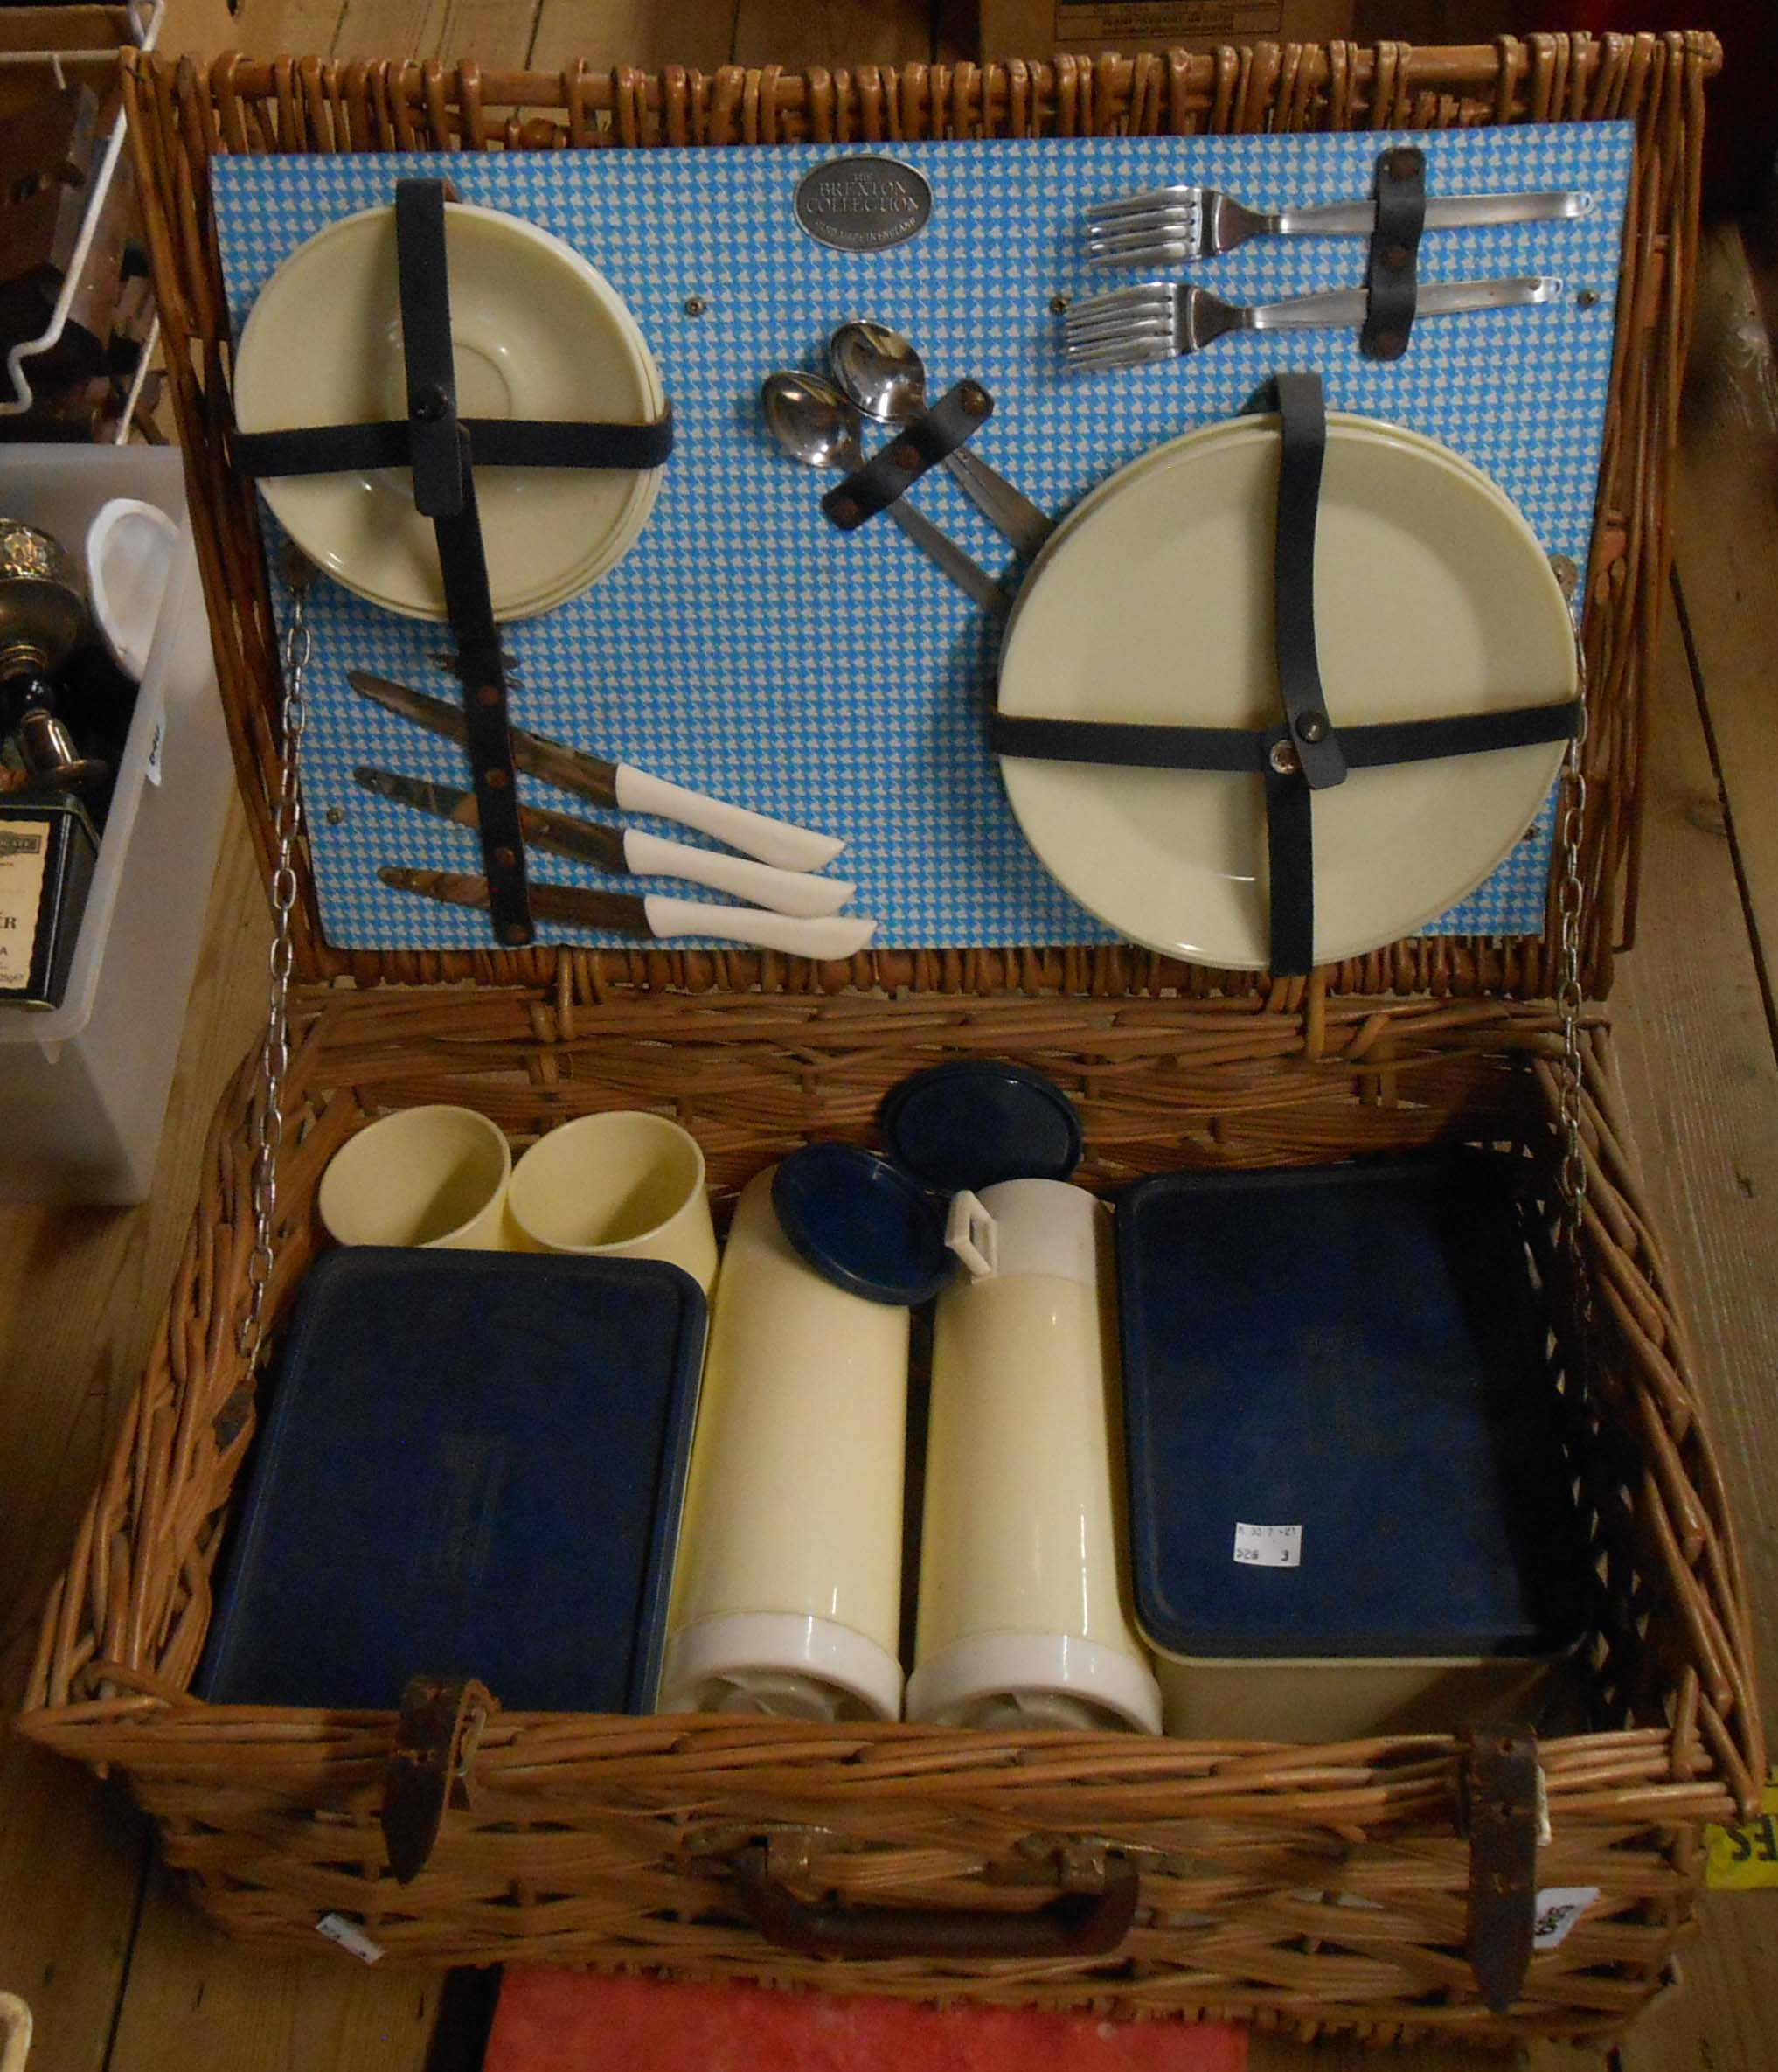 A Brexton picnic set in wicker hamper with sandwich boxes, thermos flasks, plates, etc.